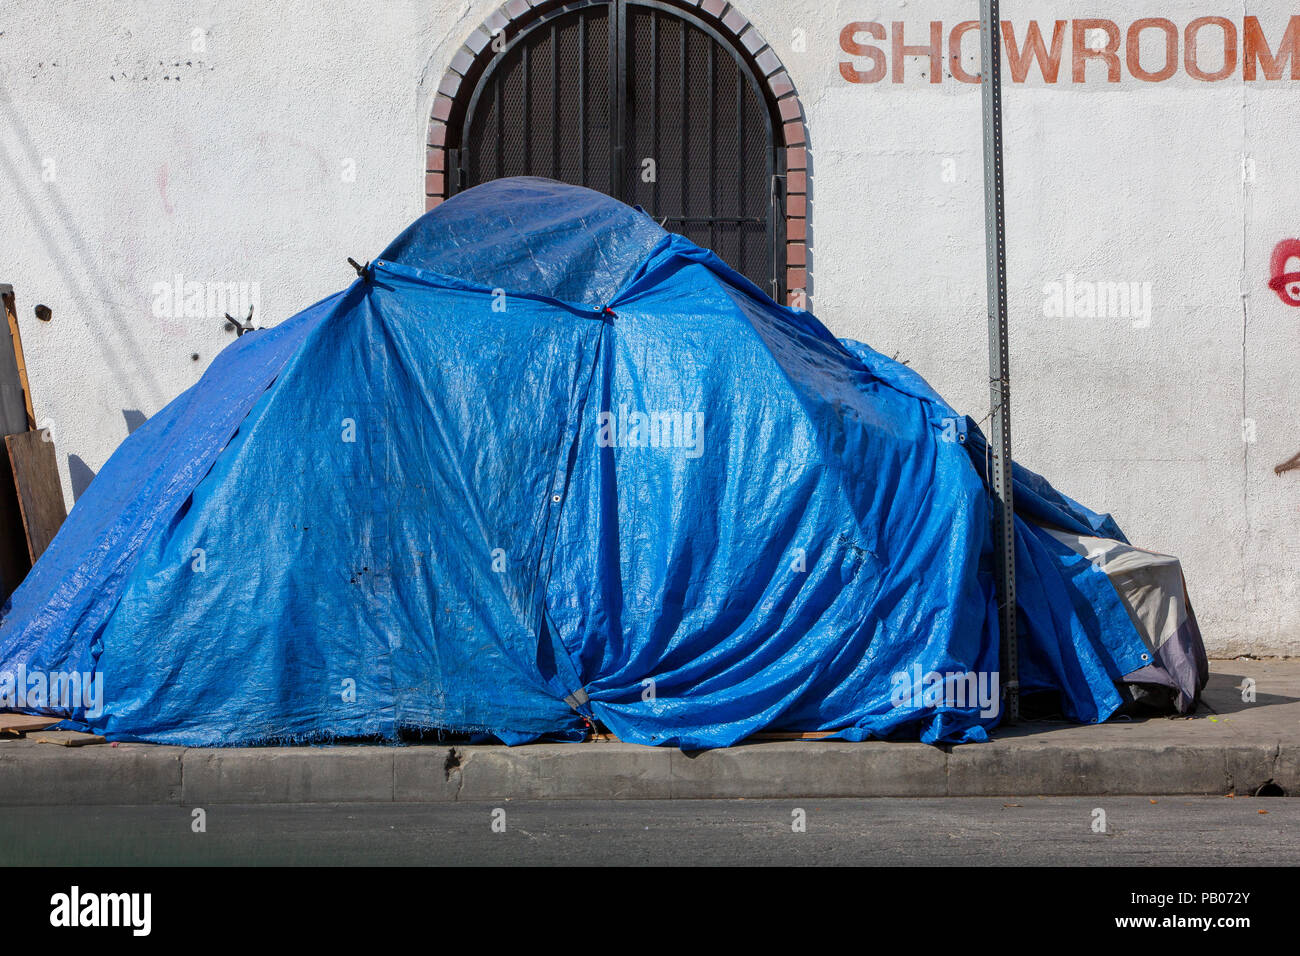 Los Angles affordable housing crisis has created rampant homelessness in and around the city - Stock Image